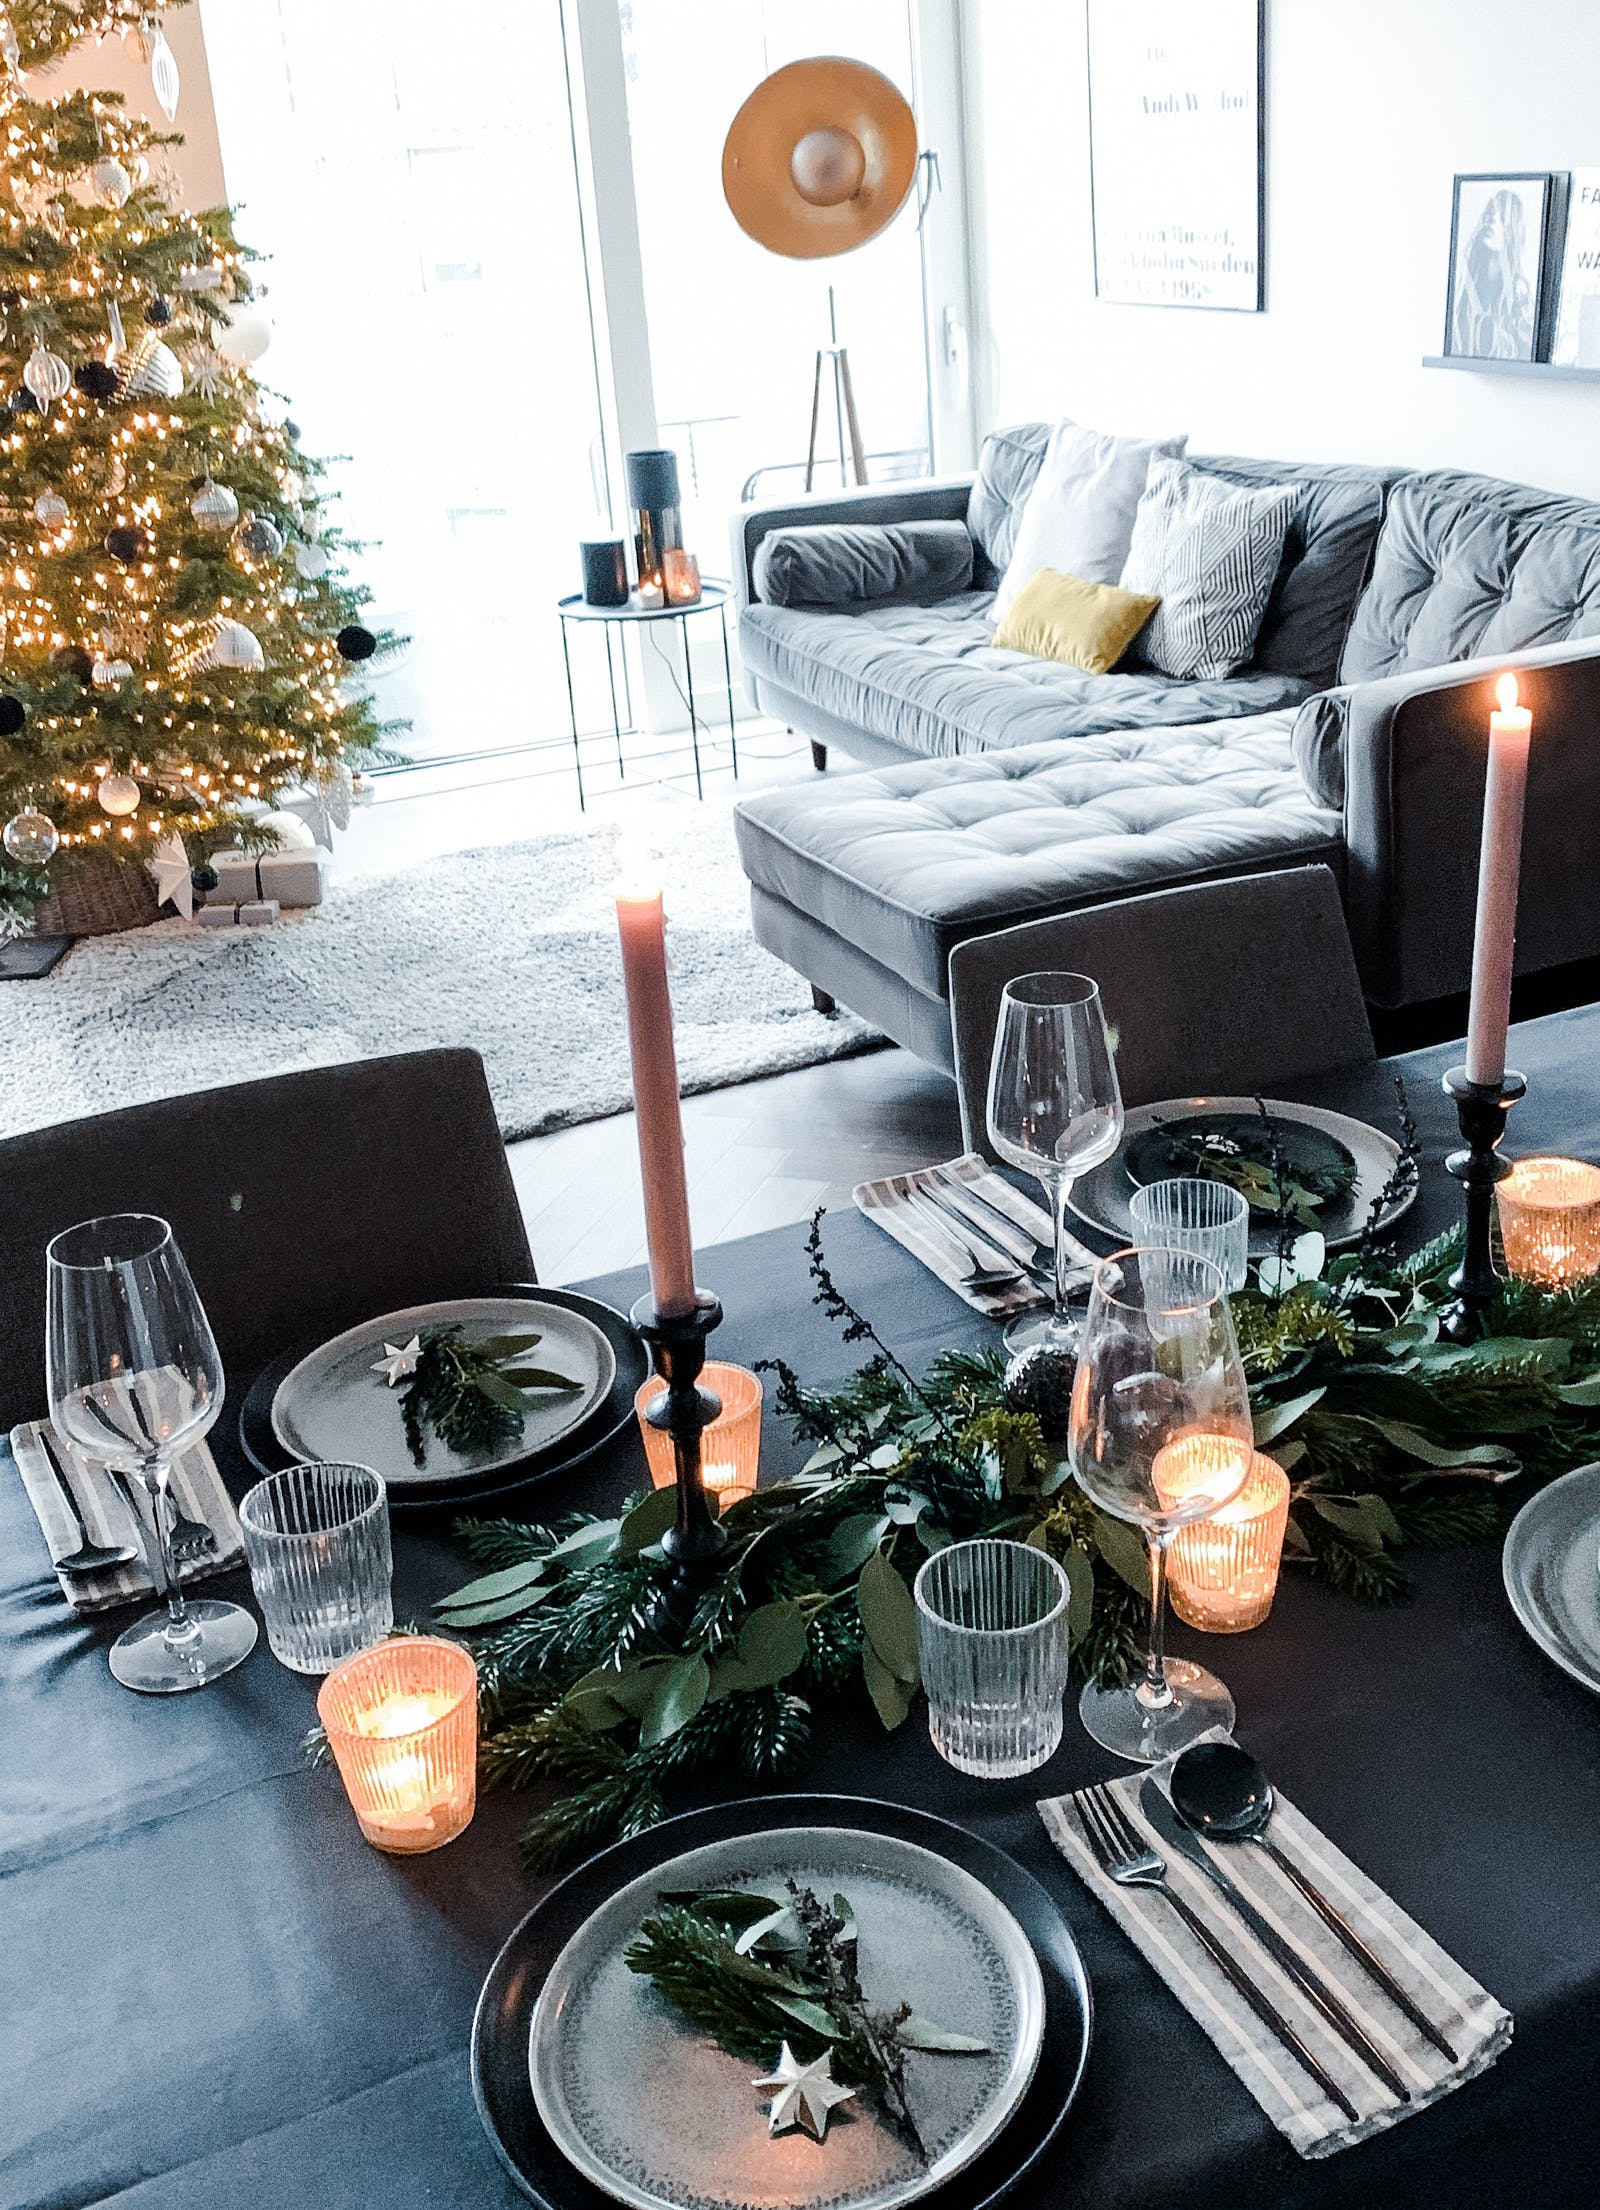 Table scape with fresh foliage and candle sticks